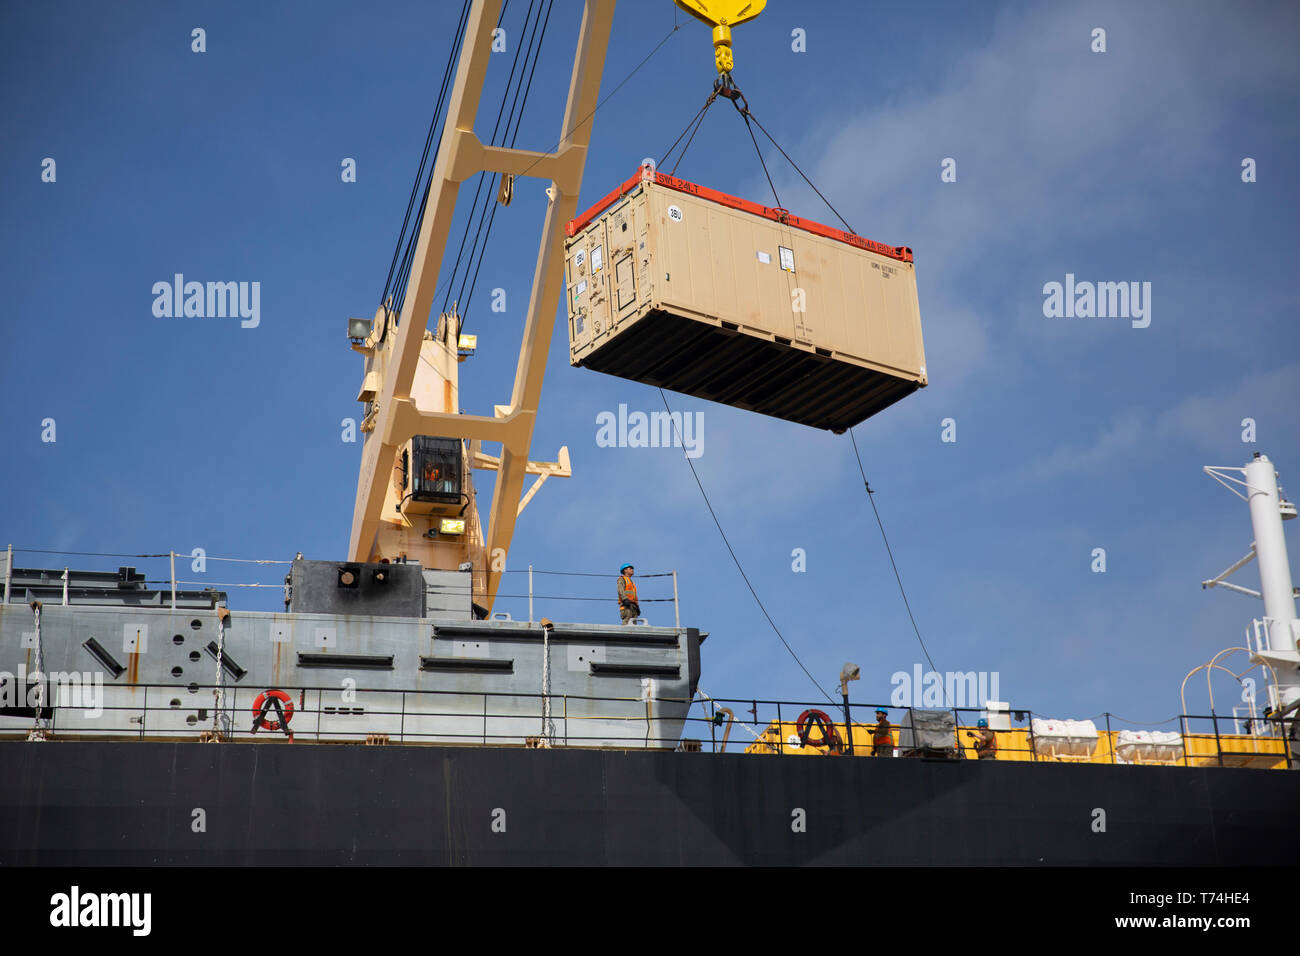 An intermodal container is lifted by crane to be staged onto the USNS William R. Button during a pier side equipment backload at Port Hueneme, Calif., as part of Exercise Pacific Blitz 19, March 12. Pacific Blitz 19 is designed to train Marines and Sailors in maritime prepositioning force operations and aims to increase proficiency, expand levels of cooperation and to enhance maritime capabilities. (U.S. Marine Corps photo by Cpl. Jacob A. Farbo) - Stock Image